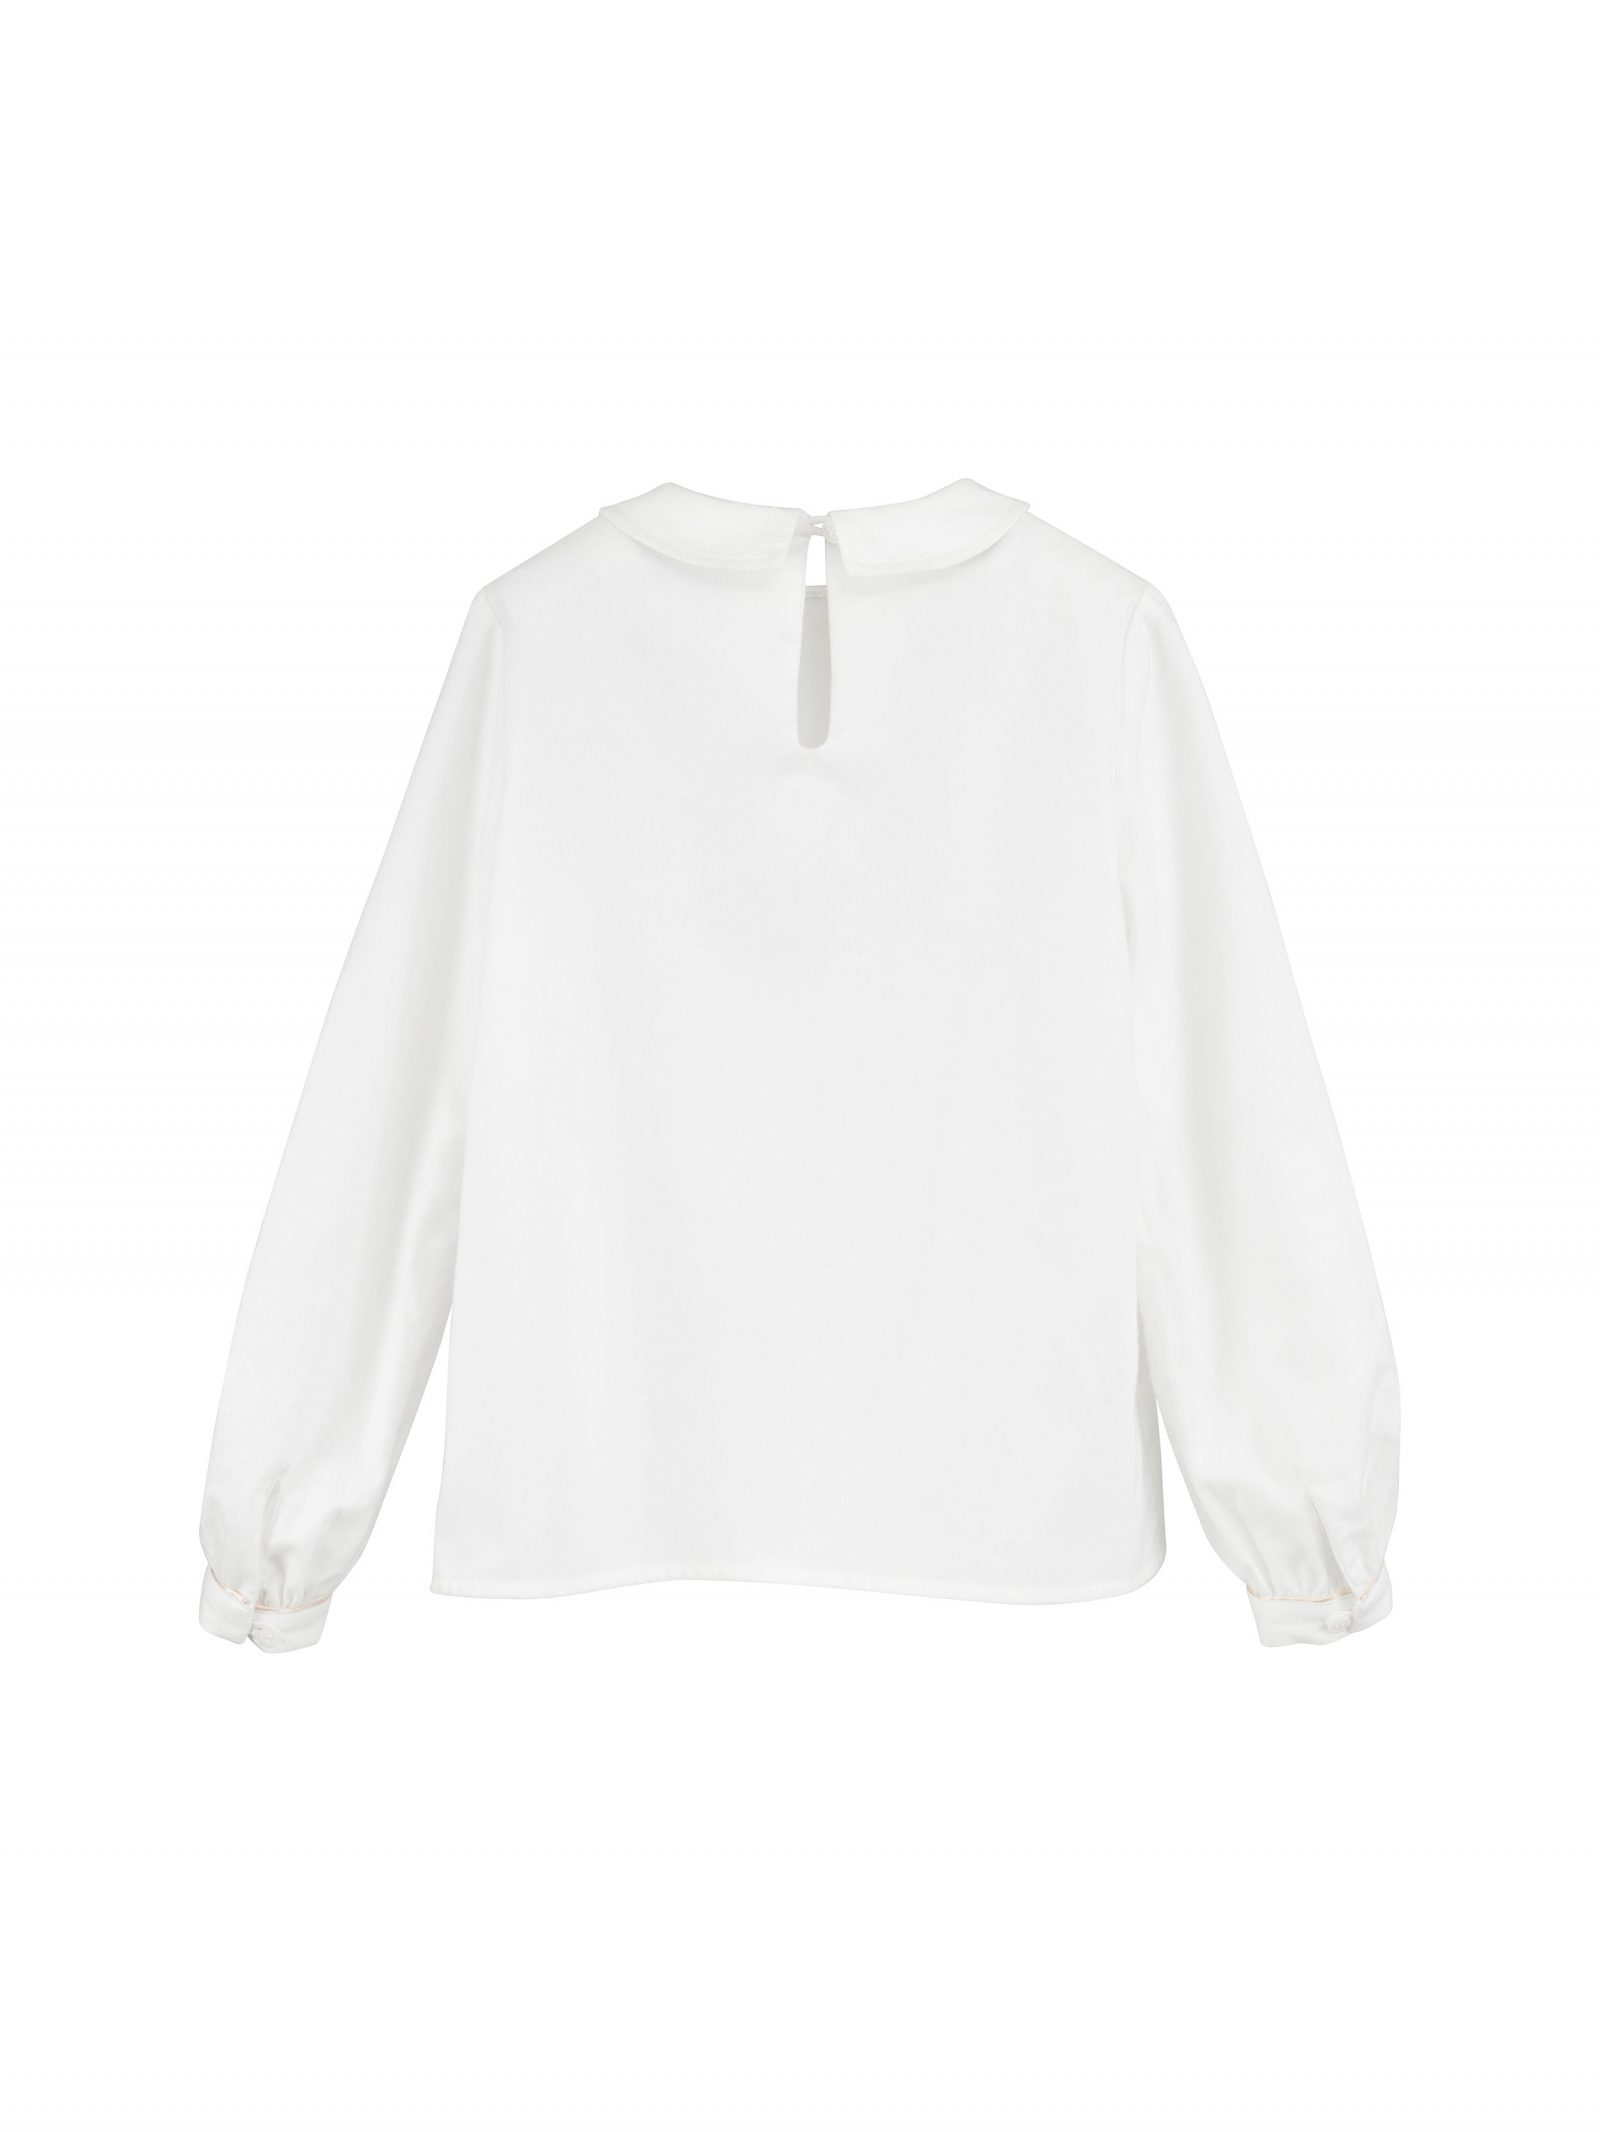 Audrey Long Sleeve Blouse in Ivory - Back